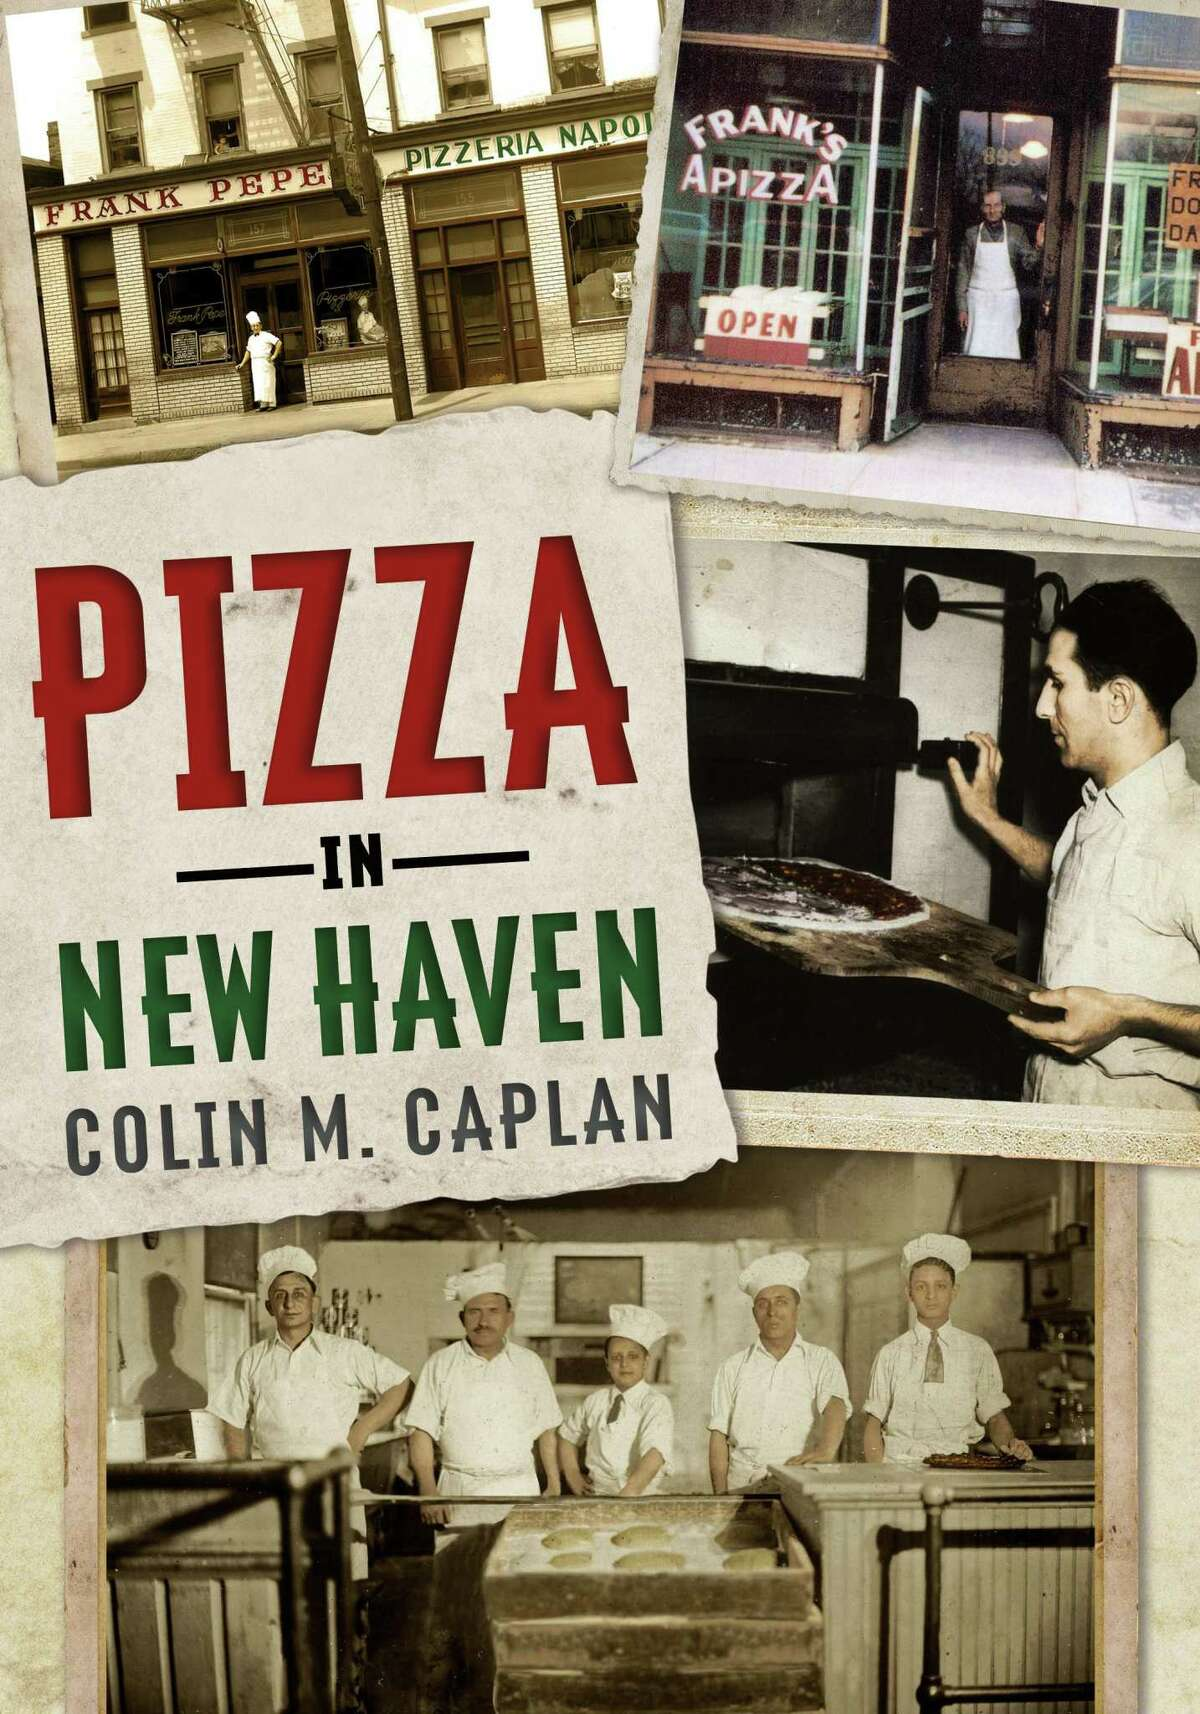 Friends of Milford Library will host speaker, Colin M. Caplan, who will discuss his latest book Pizza in New Haven on Tuesday, Oct. 1.